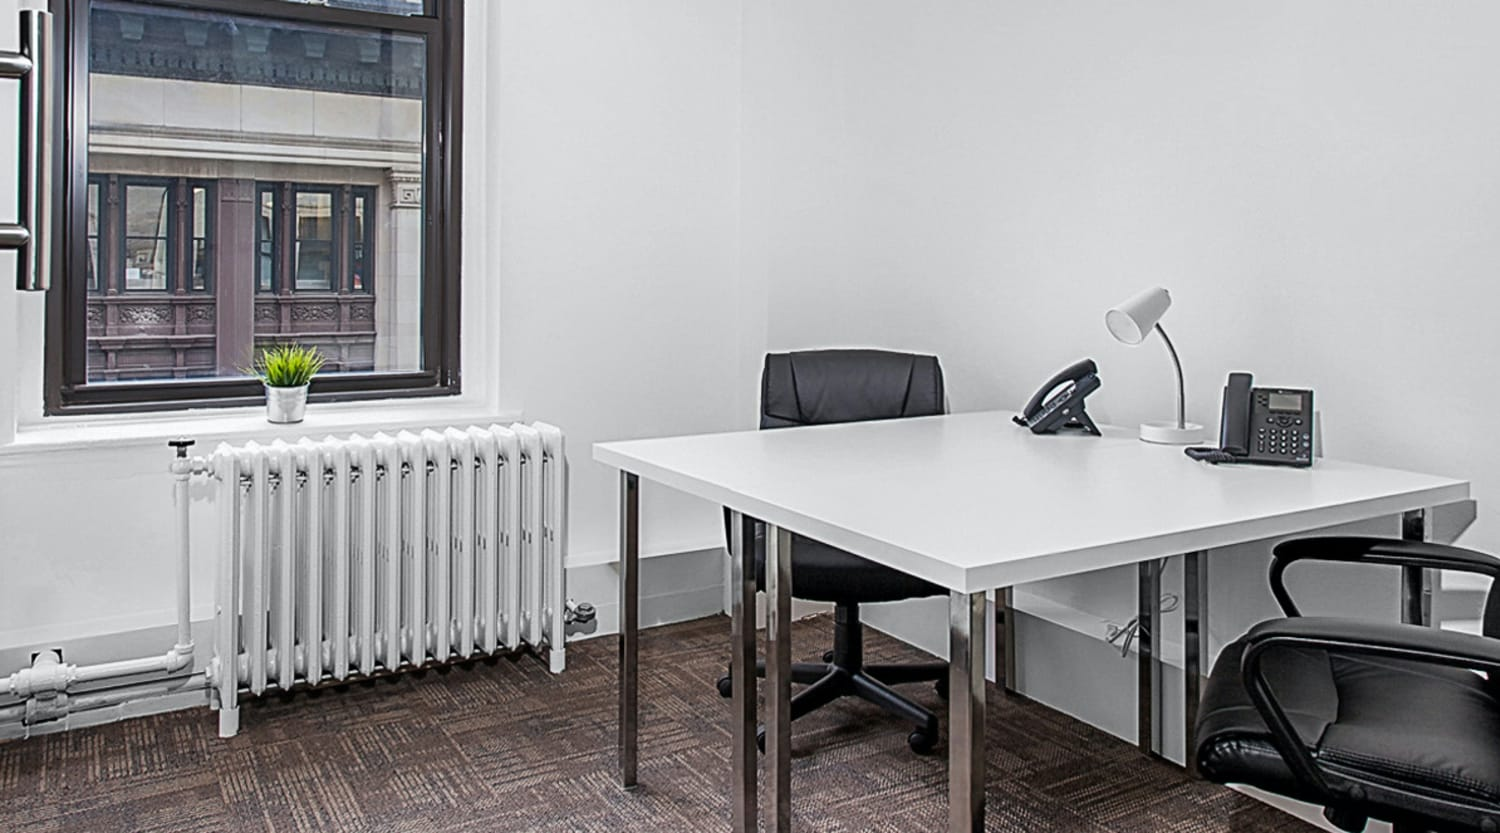 10 E 39th Street, 12th Floor, Suite 1-3, Room Office 1